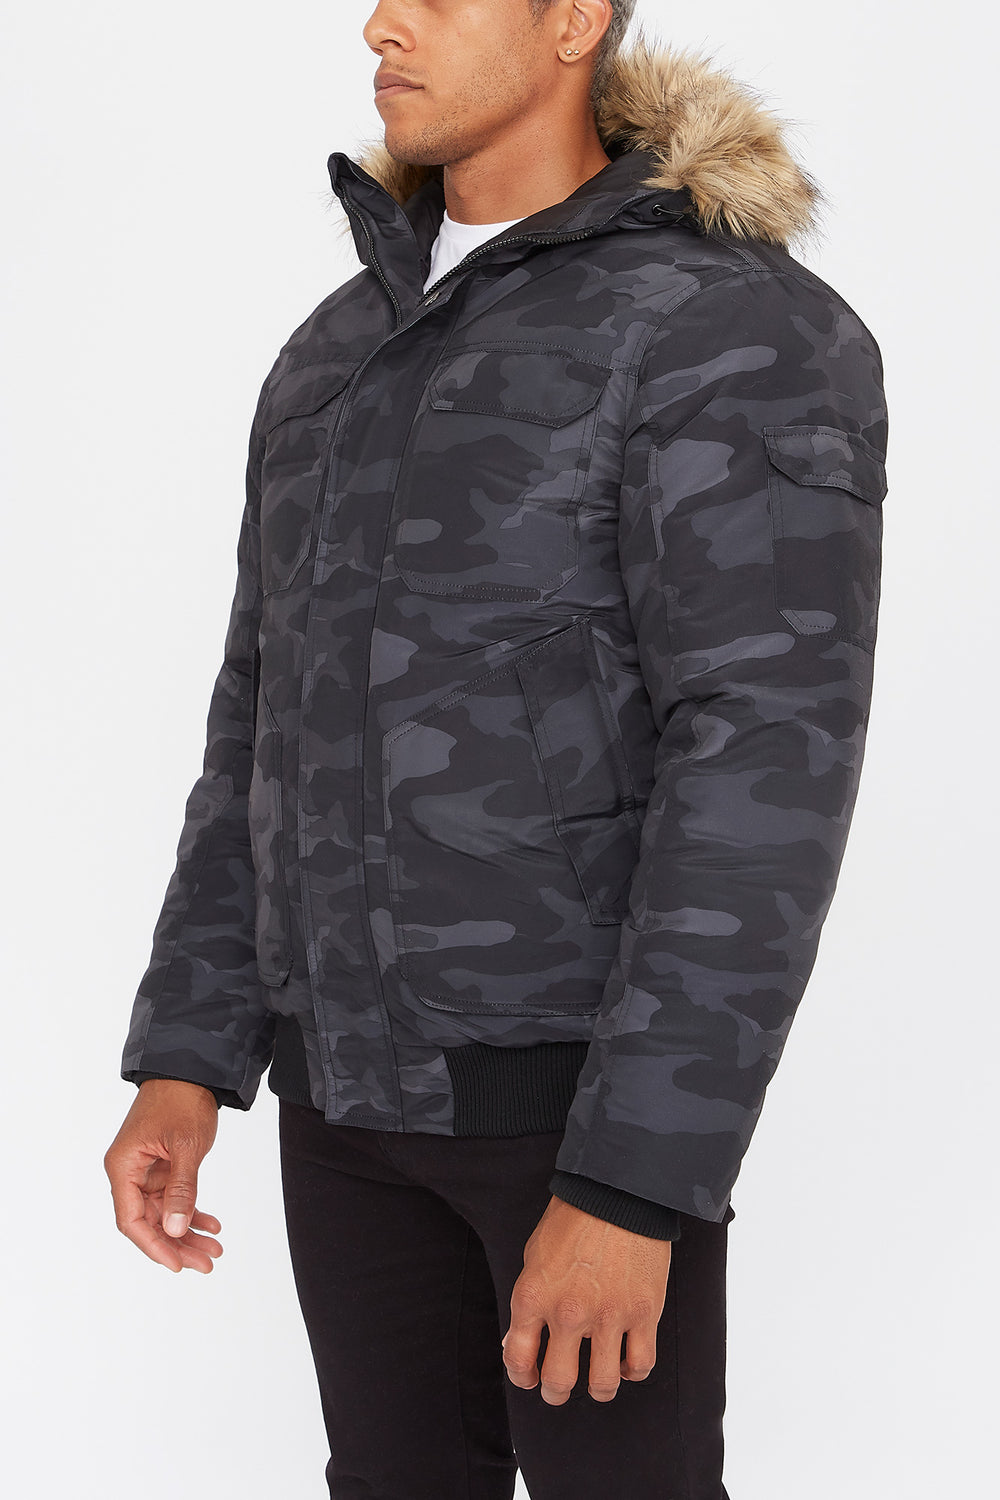 West49 Poly-Fill Bomber Jacket Black with White